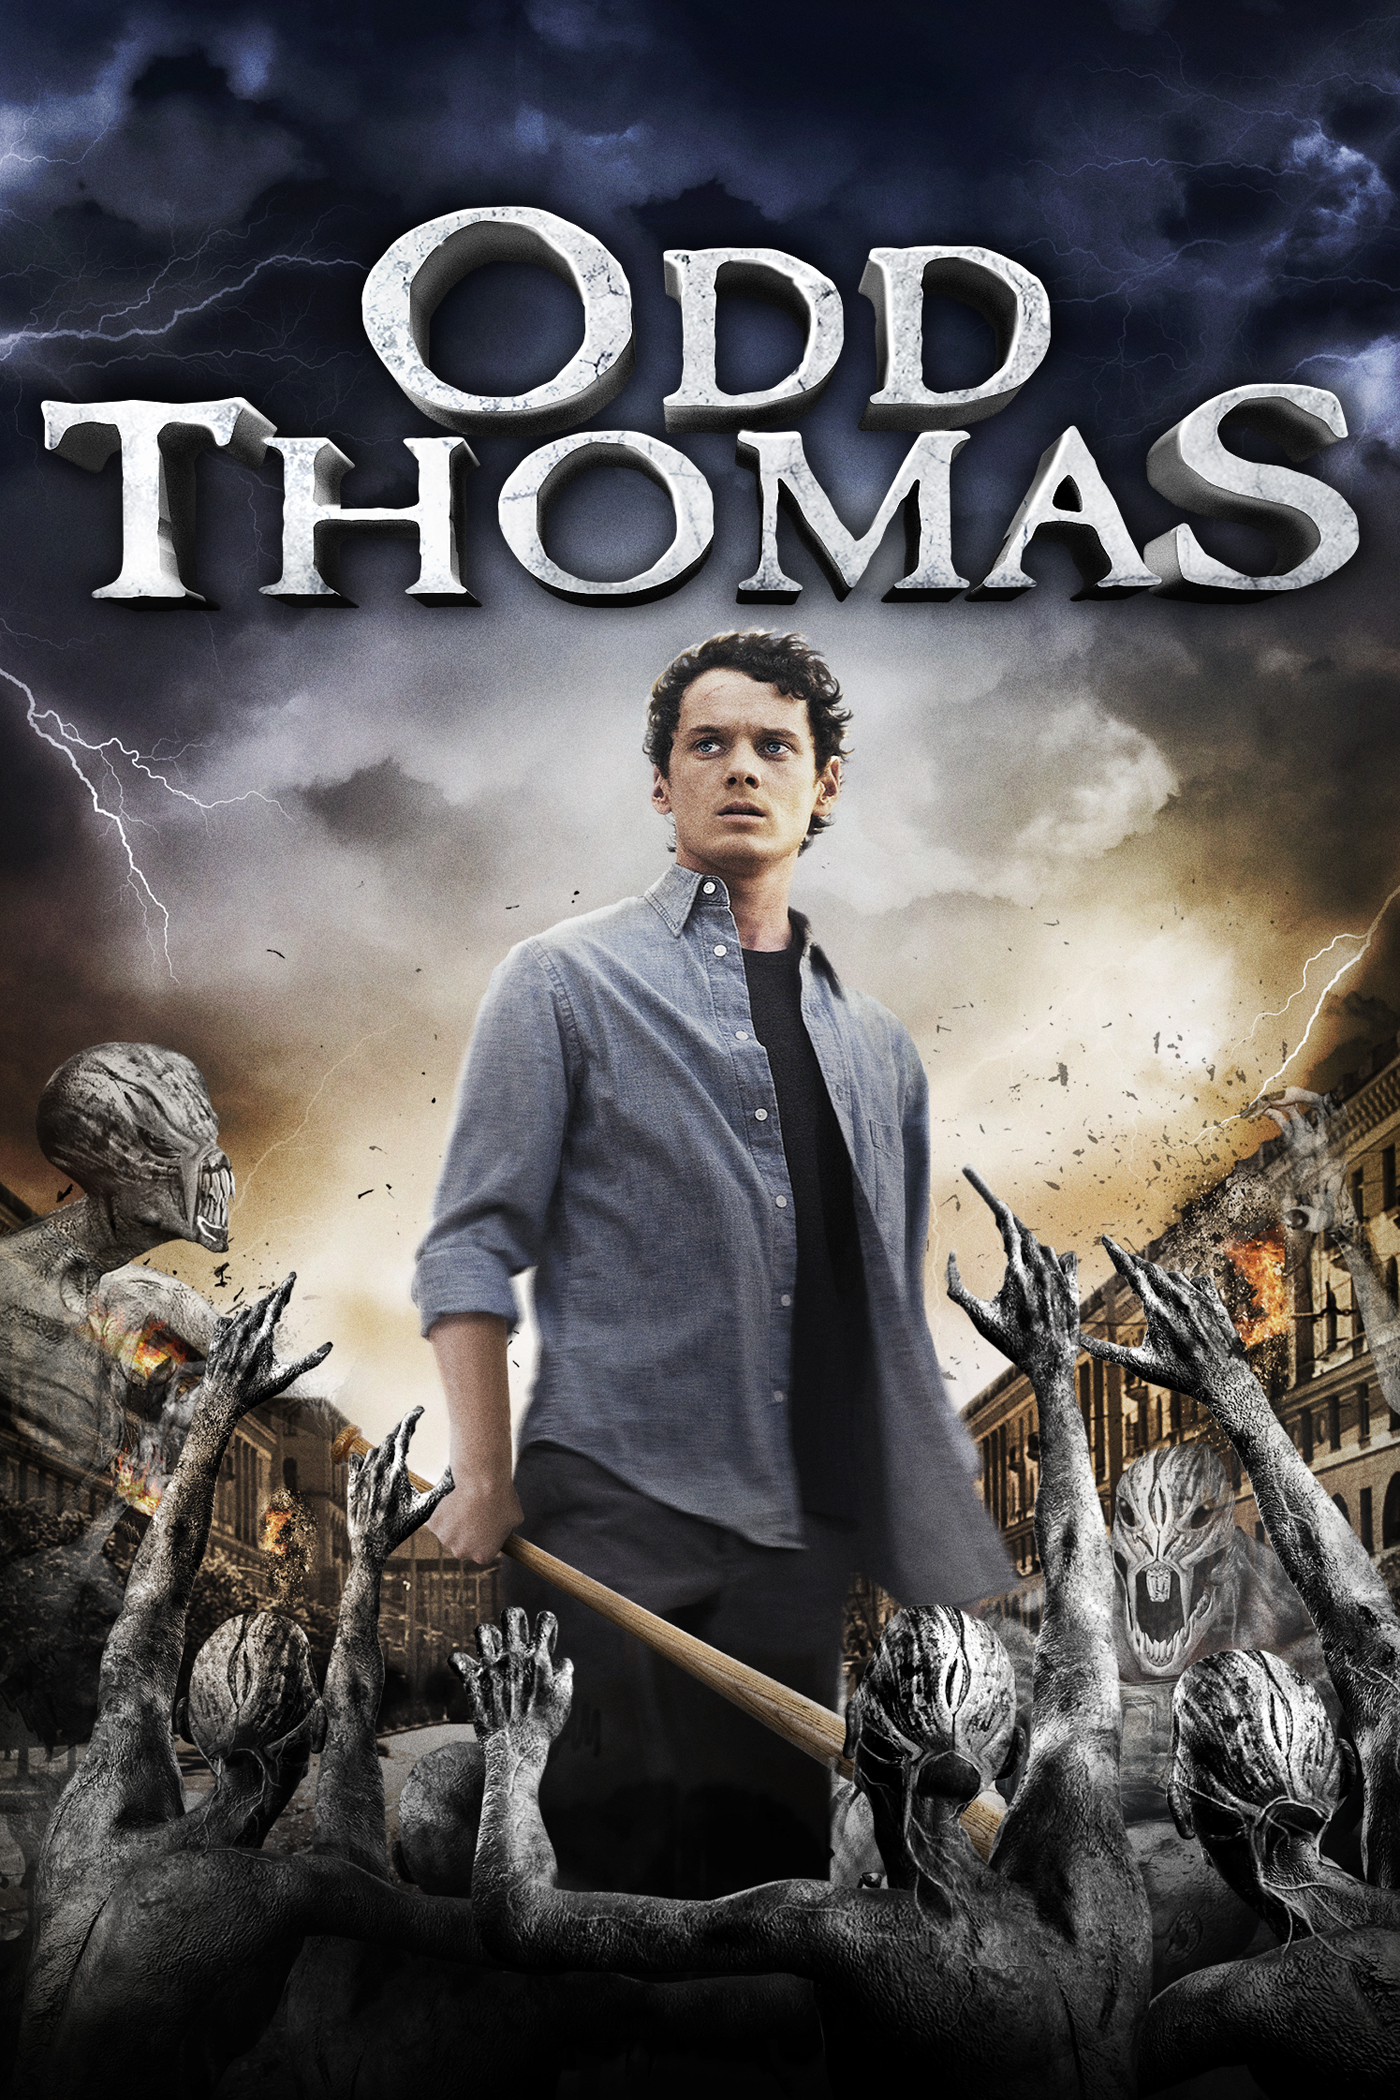 """Odd Thomas"" theatrical poster."